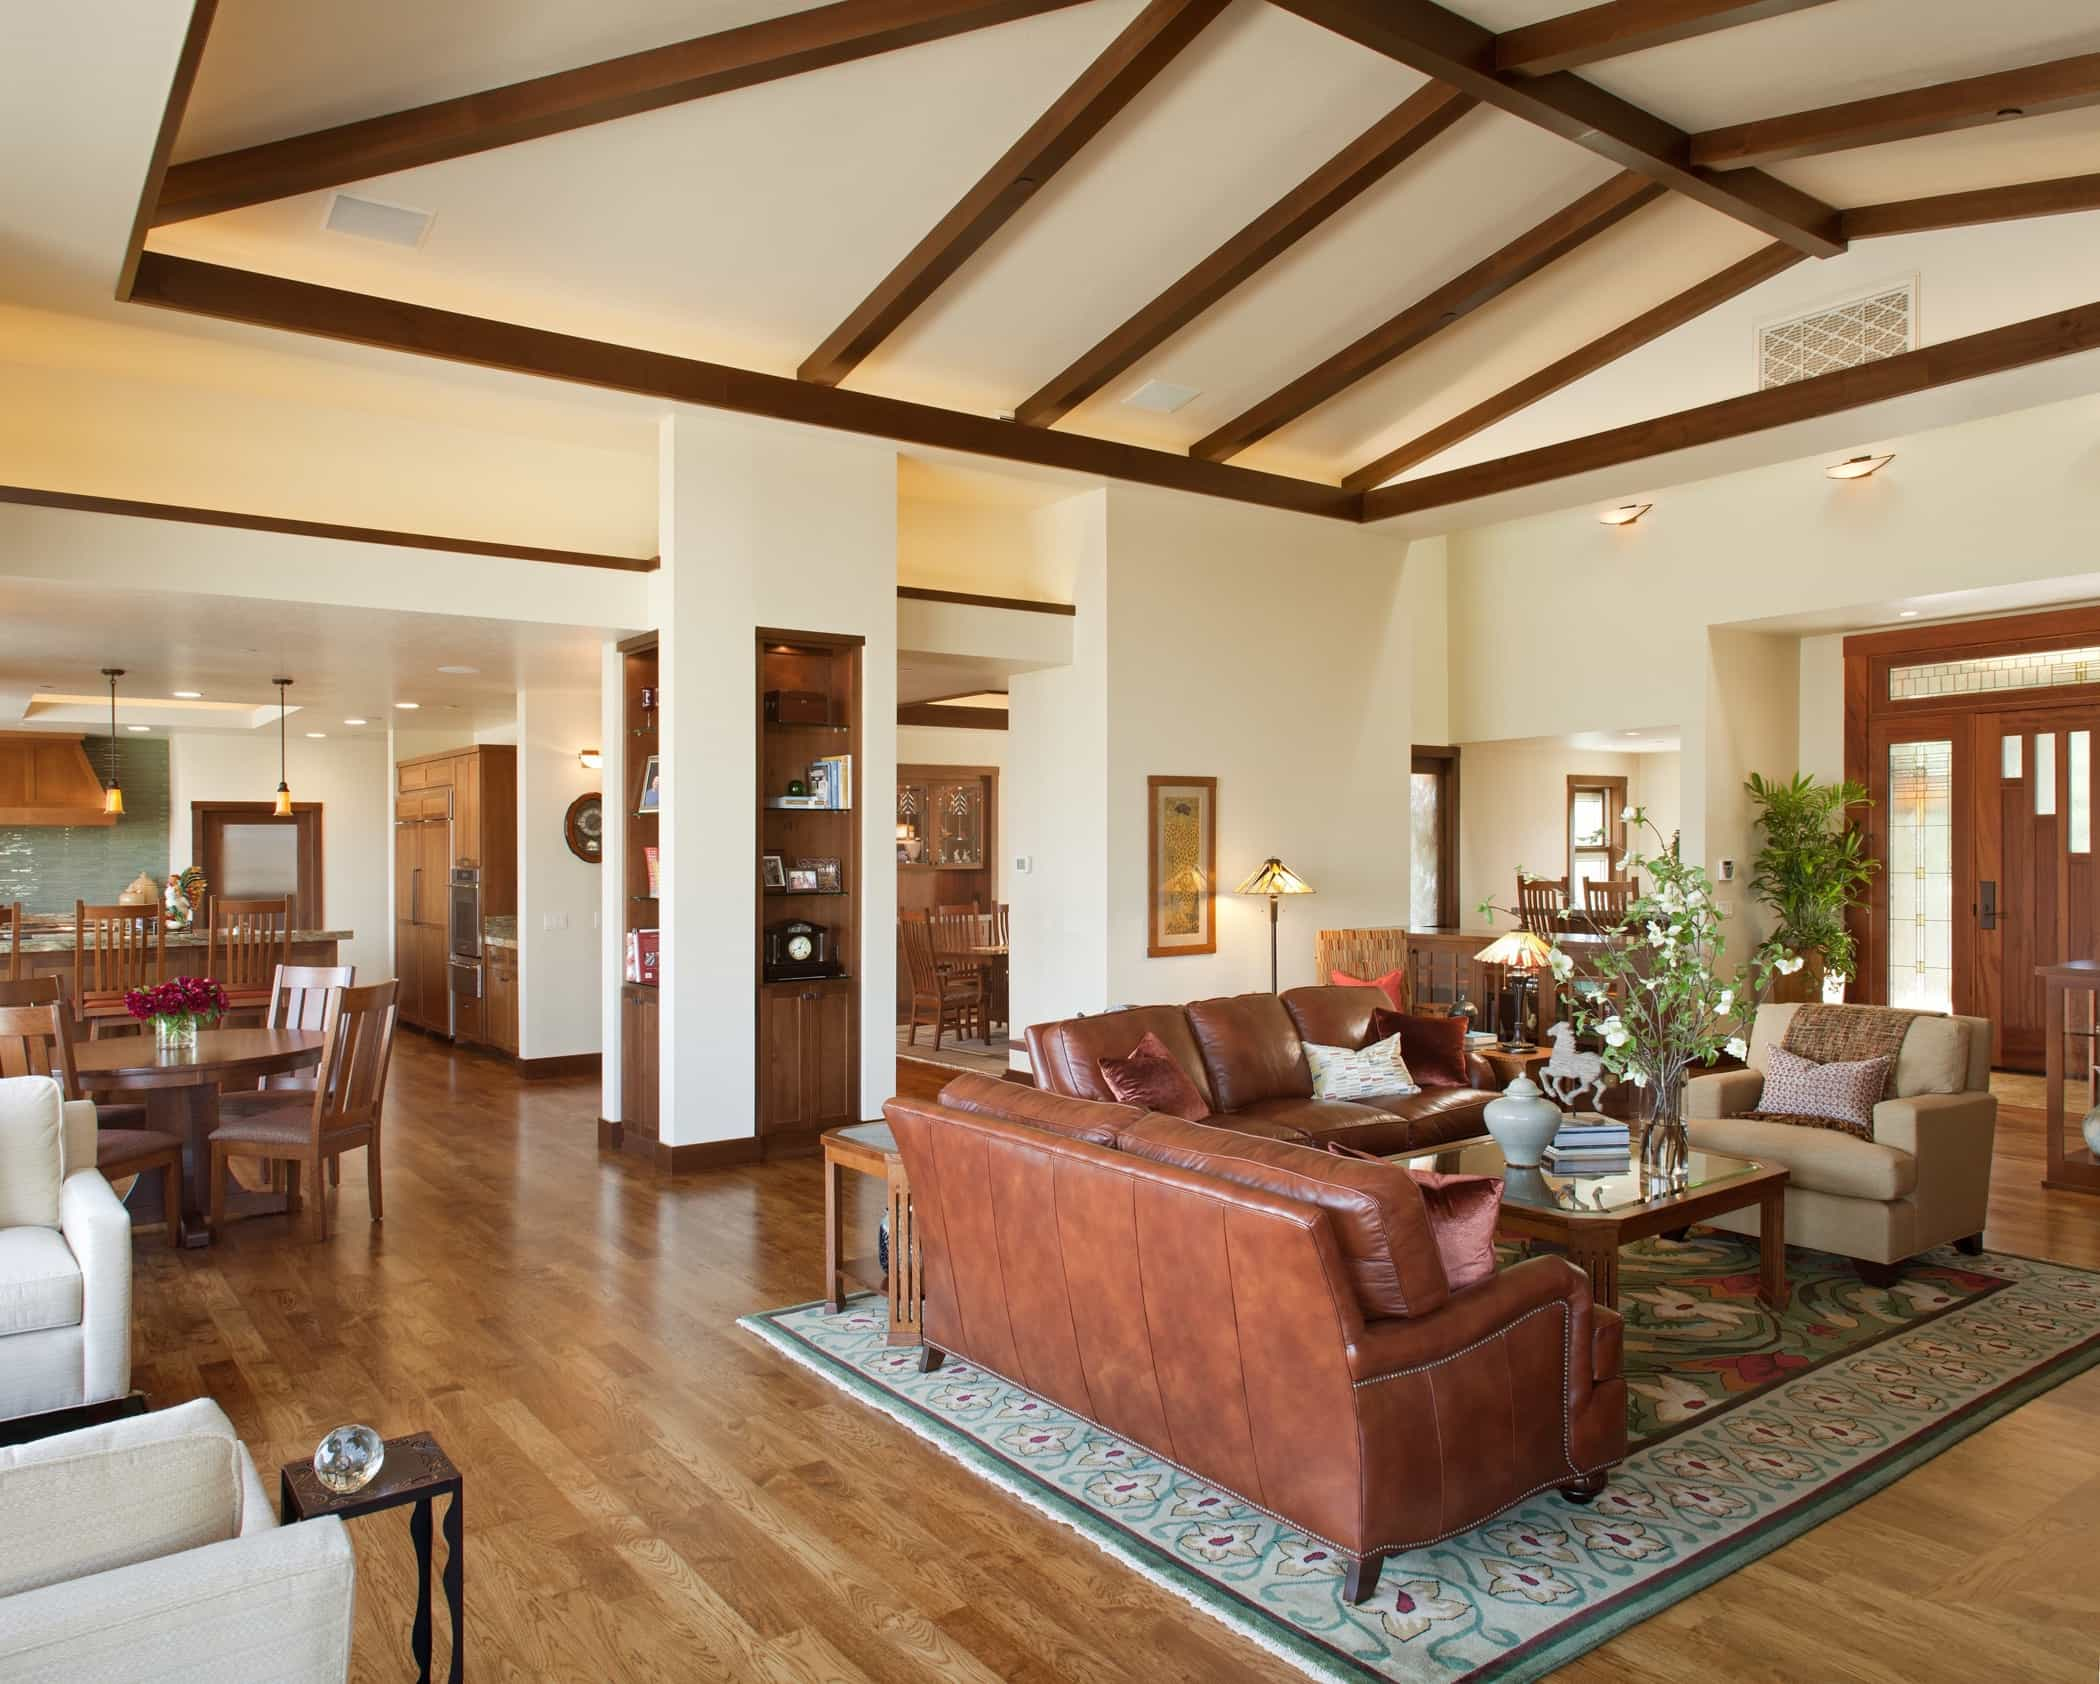 Featured Image of Modern Living Room With Vaulted Dark Stained Wood Ceiling Beams